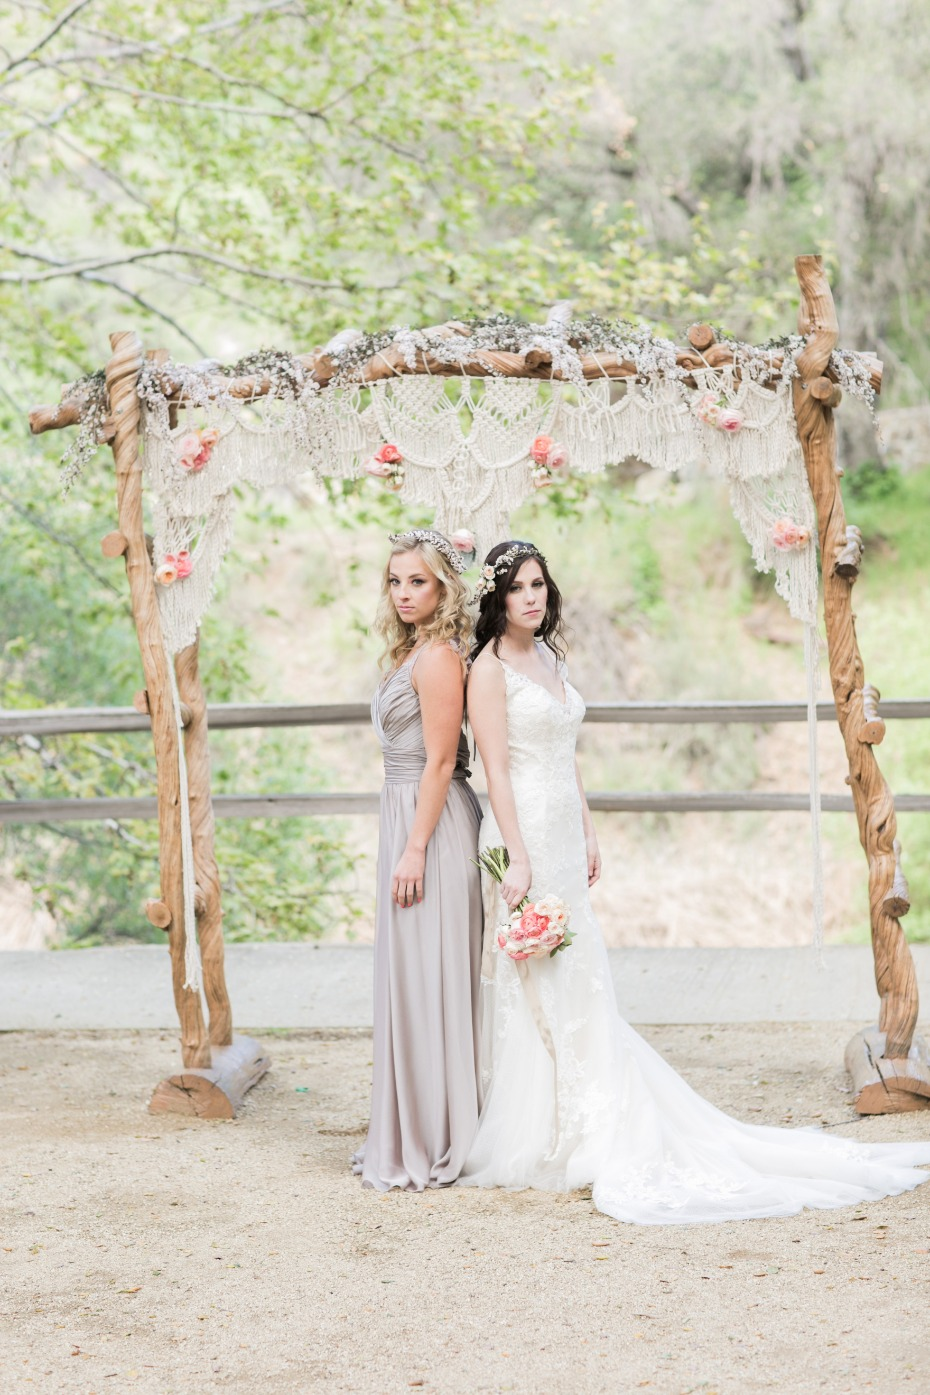 Boho romance wedding ideas